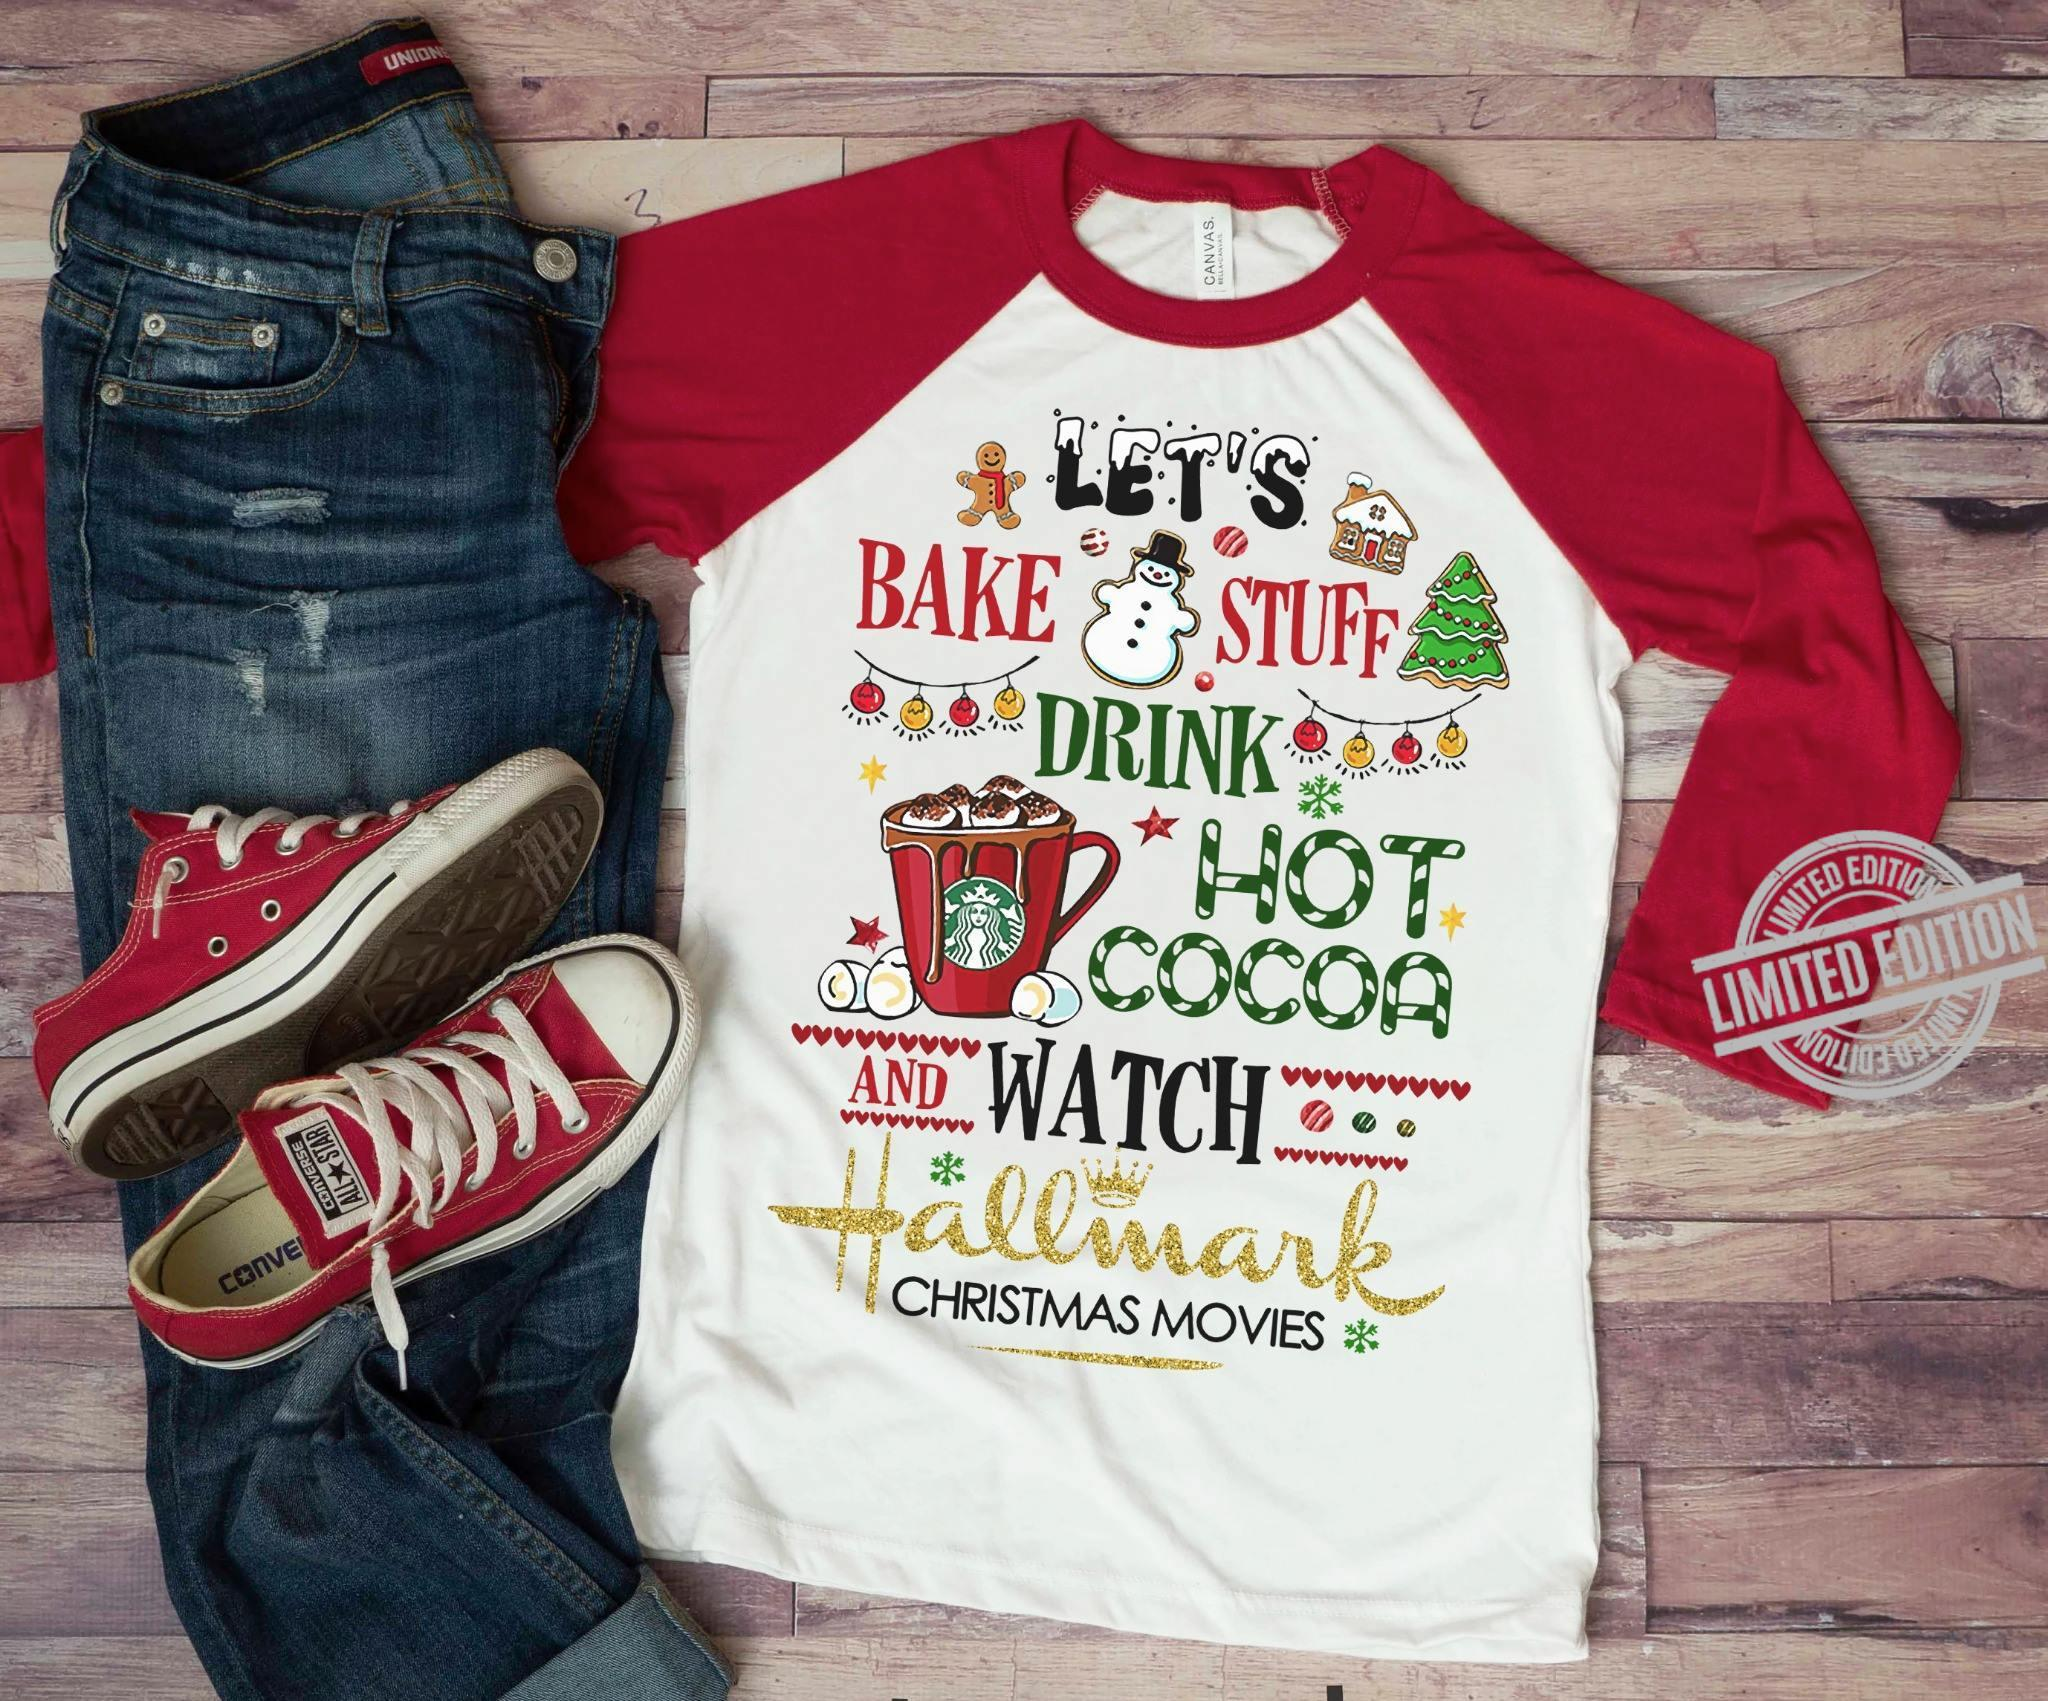 Let's Bake Stuff Drink Hot Cocoa And Watch Hallmark Christmas Movies Shirt